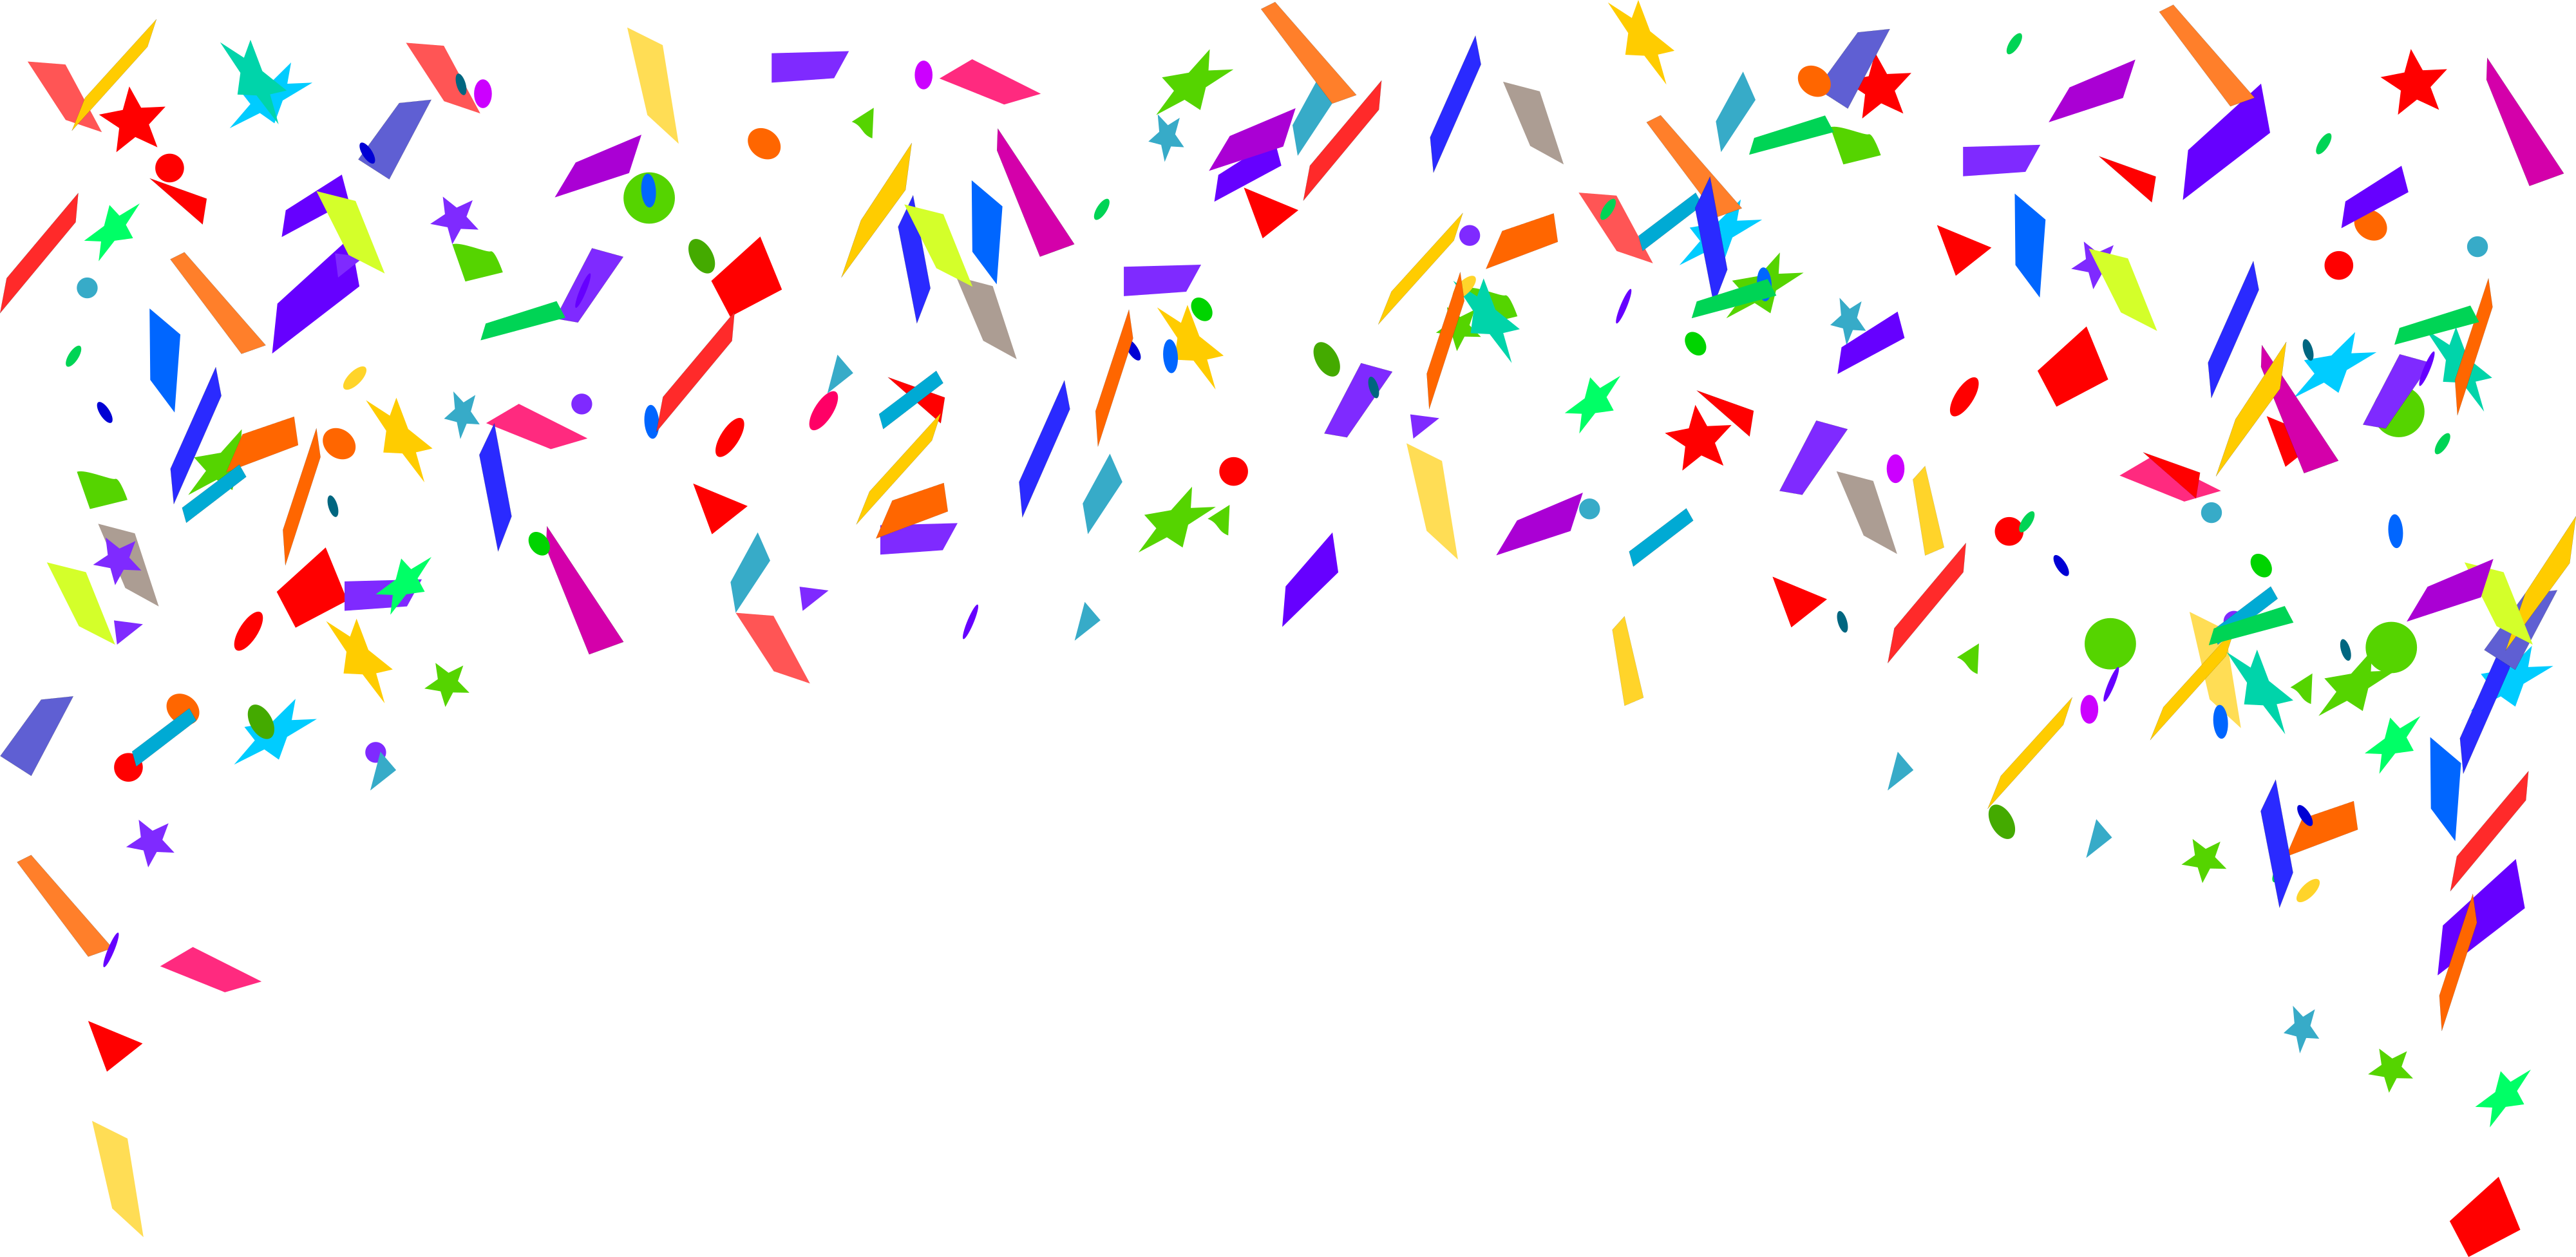 Free Download Confetti Transparent Background Transparent Cartoon Jing Fm All png & cliparts images on nicepng are best quality. confetti transparent background